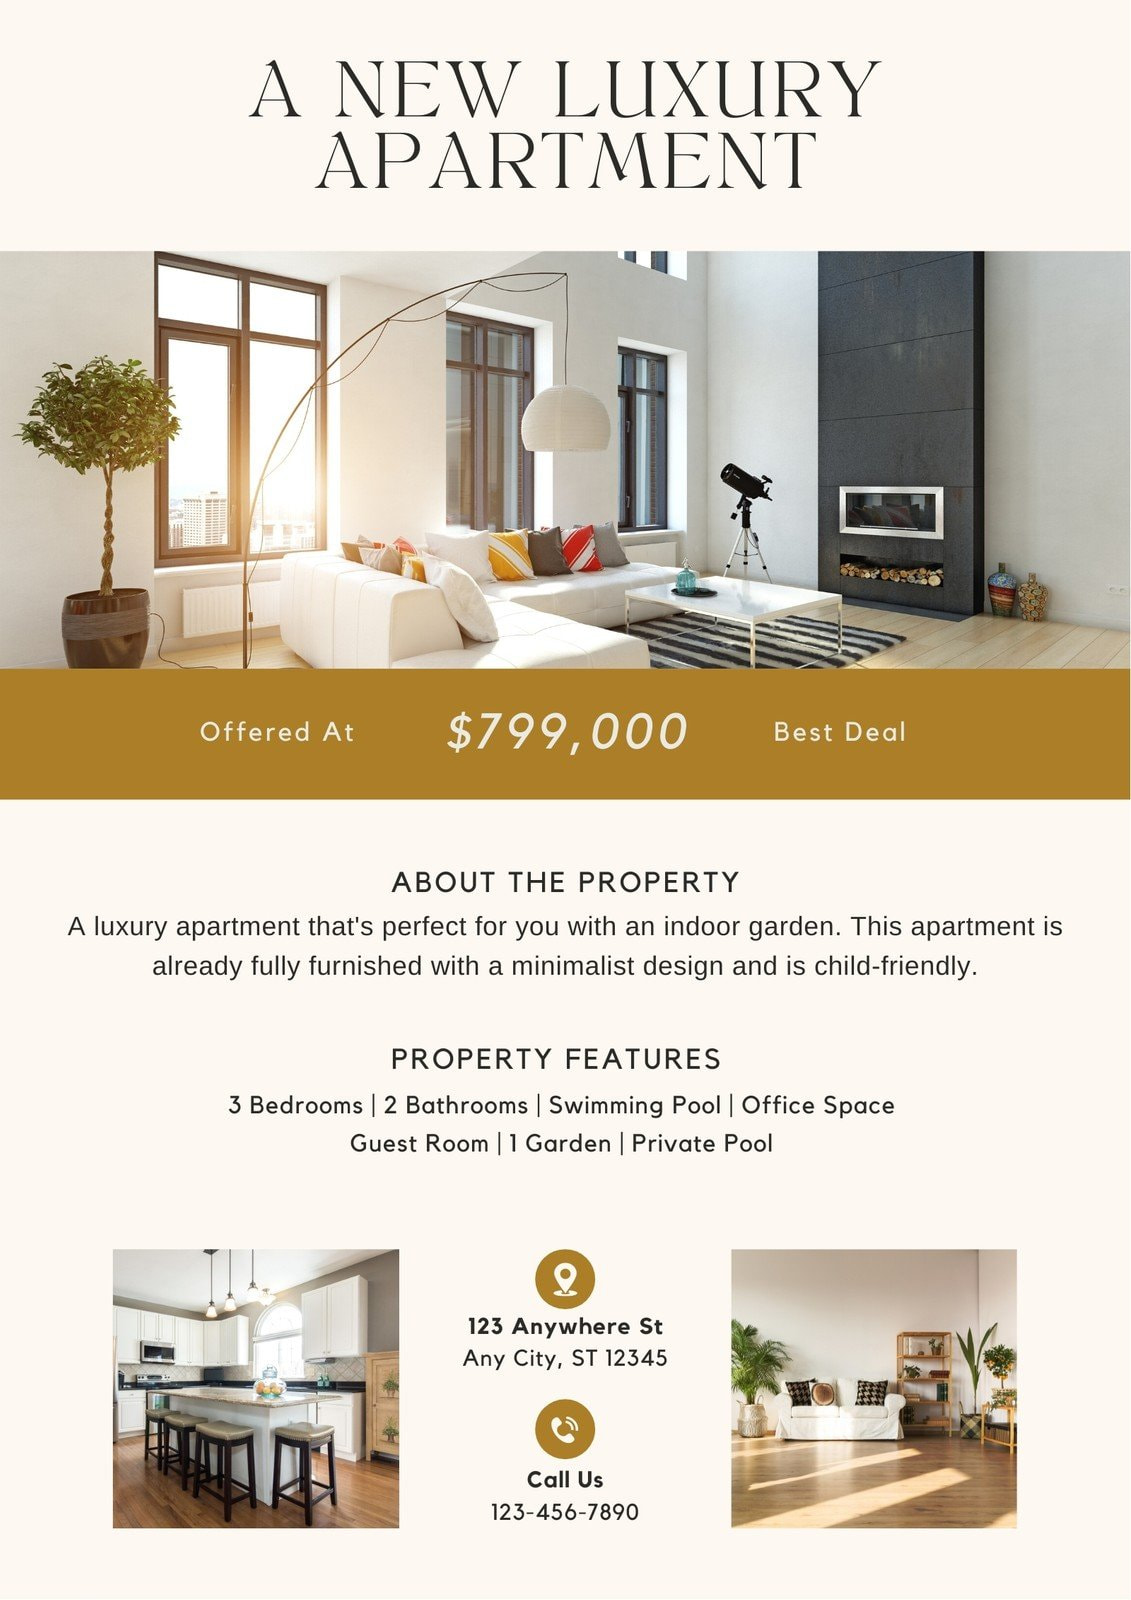 Beige and Tan Elegant Luxury Apartment For Sale Real Estate Flyer